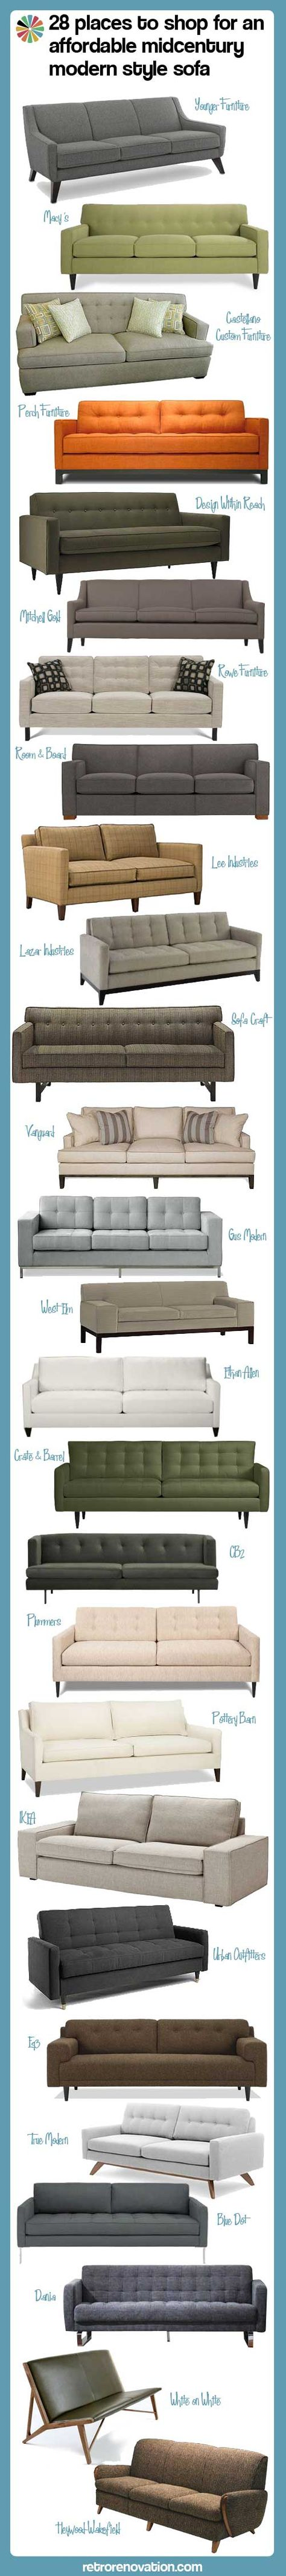 28 places to shop for a midcentury style sofa